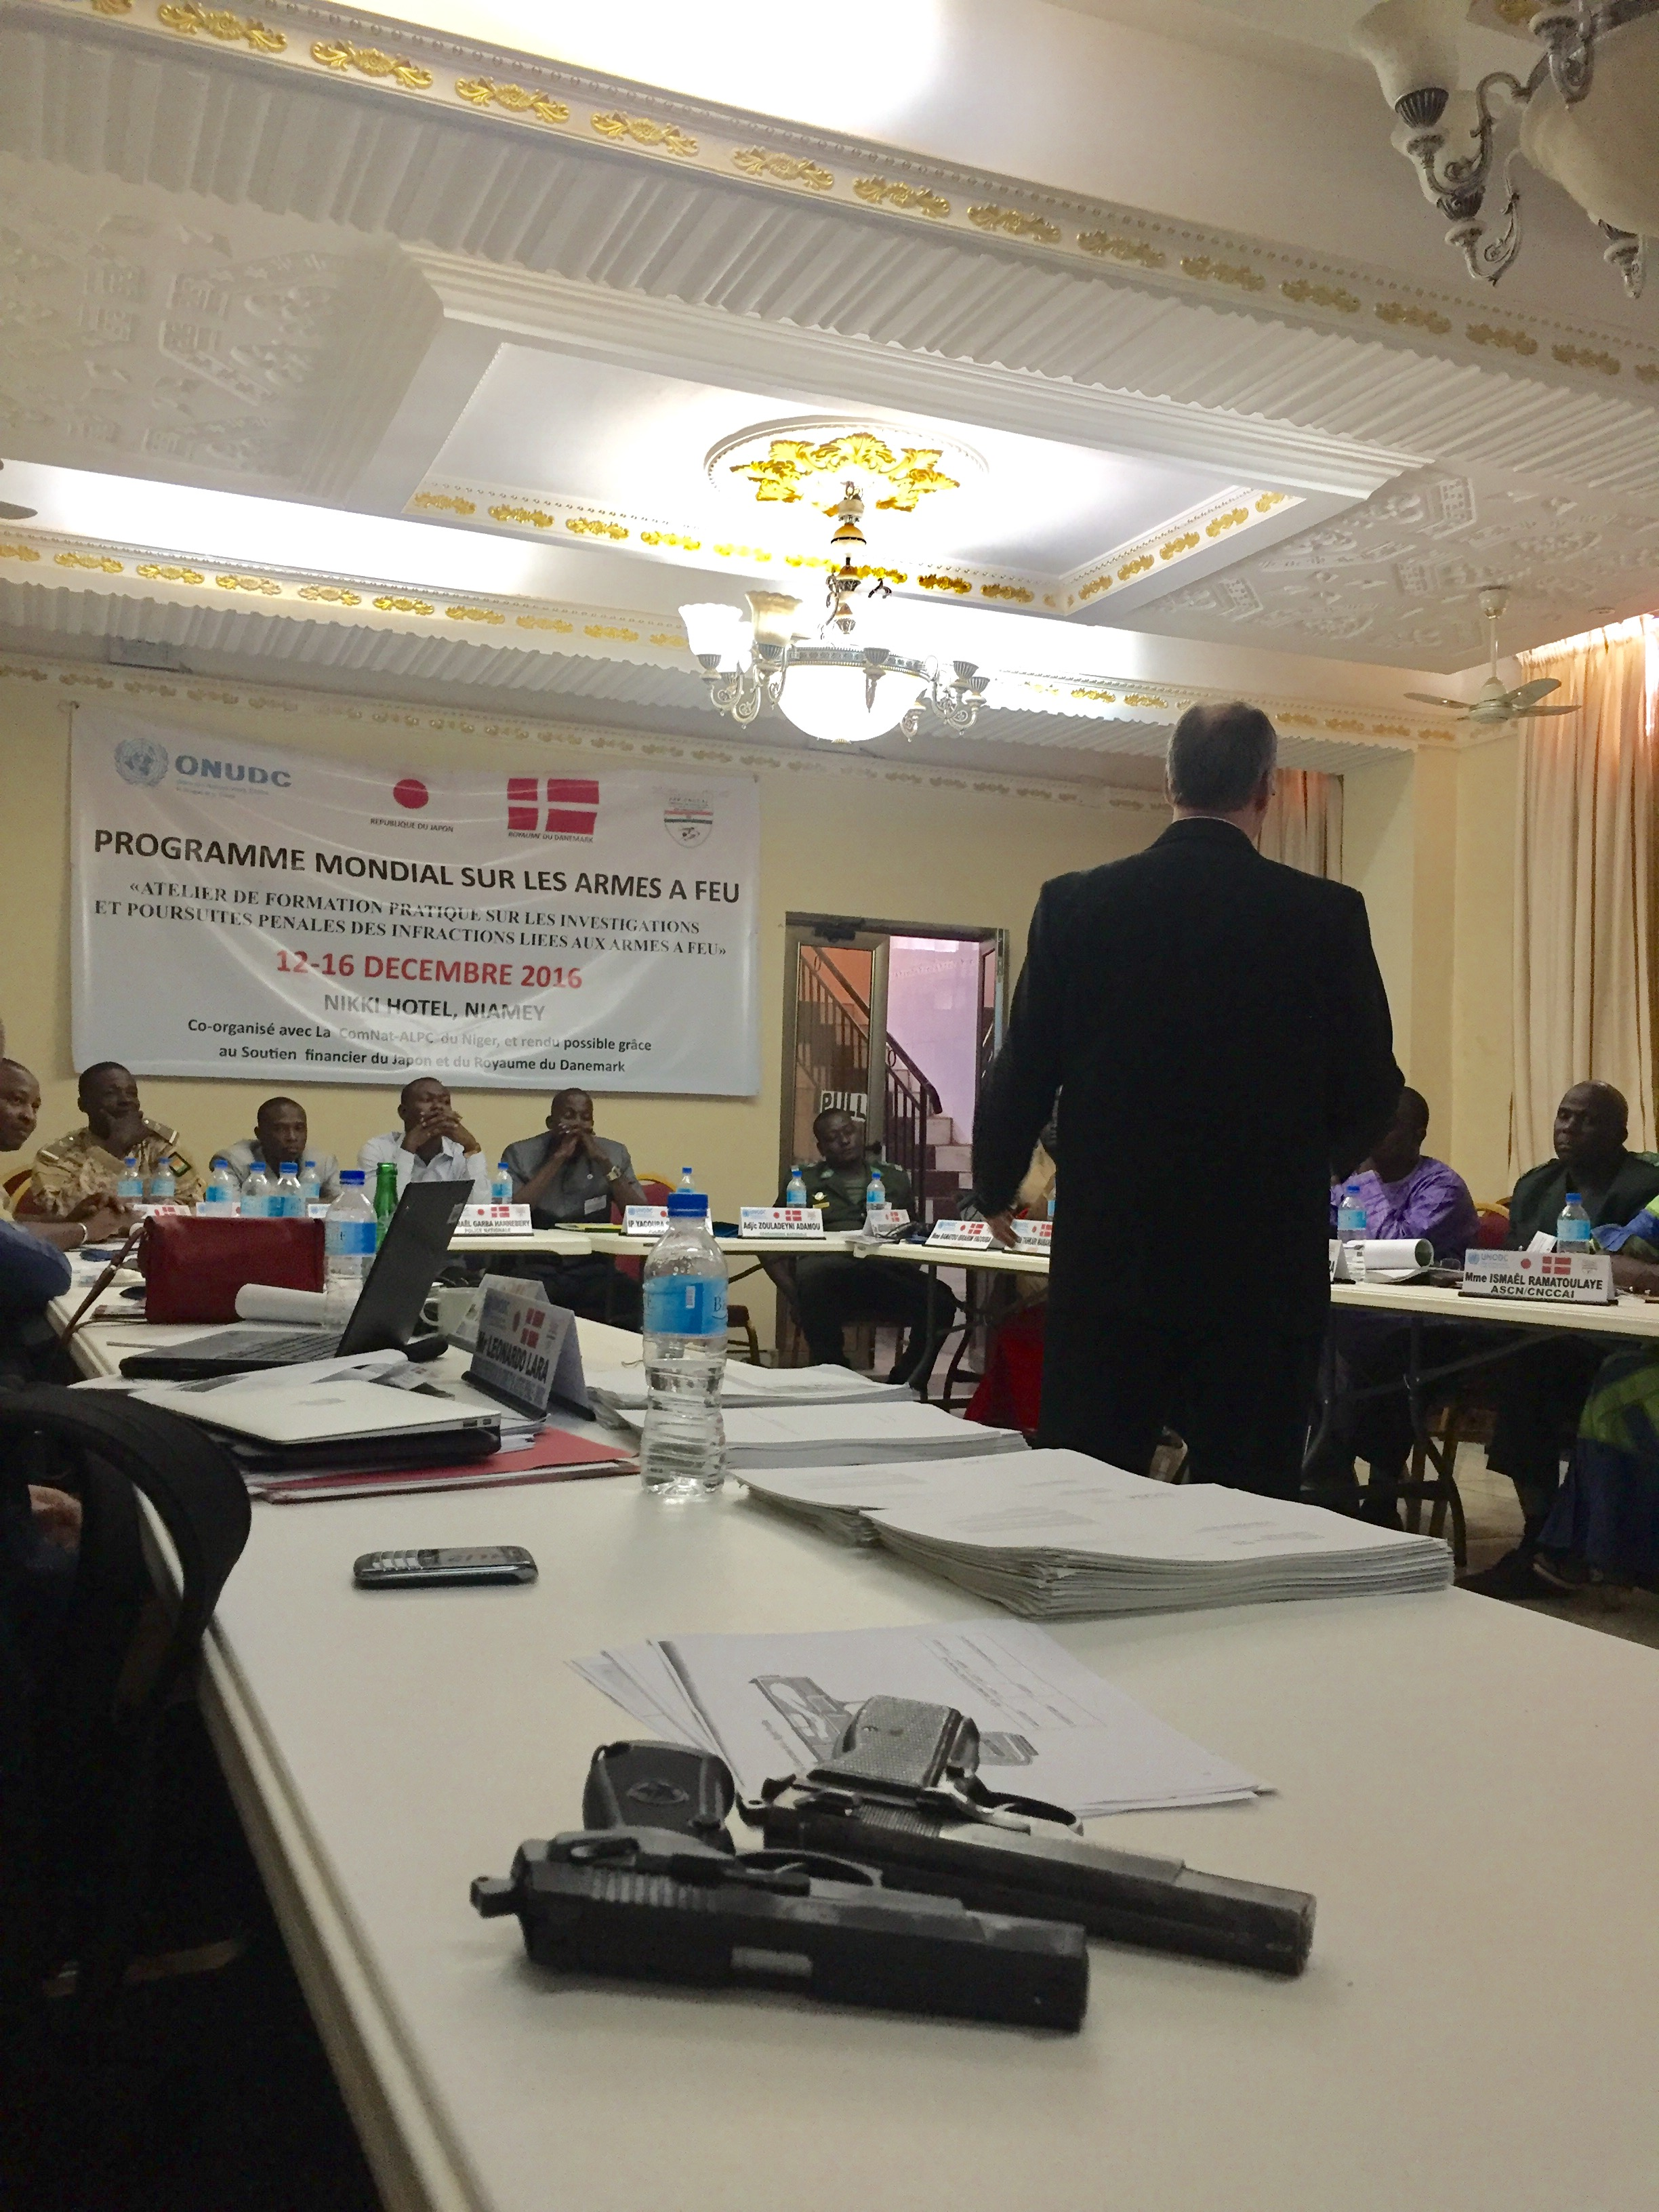 https://www.unodc.org/images/firearms-protocol/news/GFP-delivers-training-on-investigation-and-prosecution-in-Niger/2784860.jpg?1484923296447